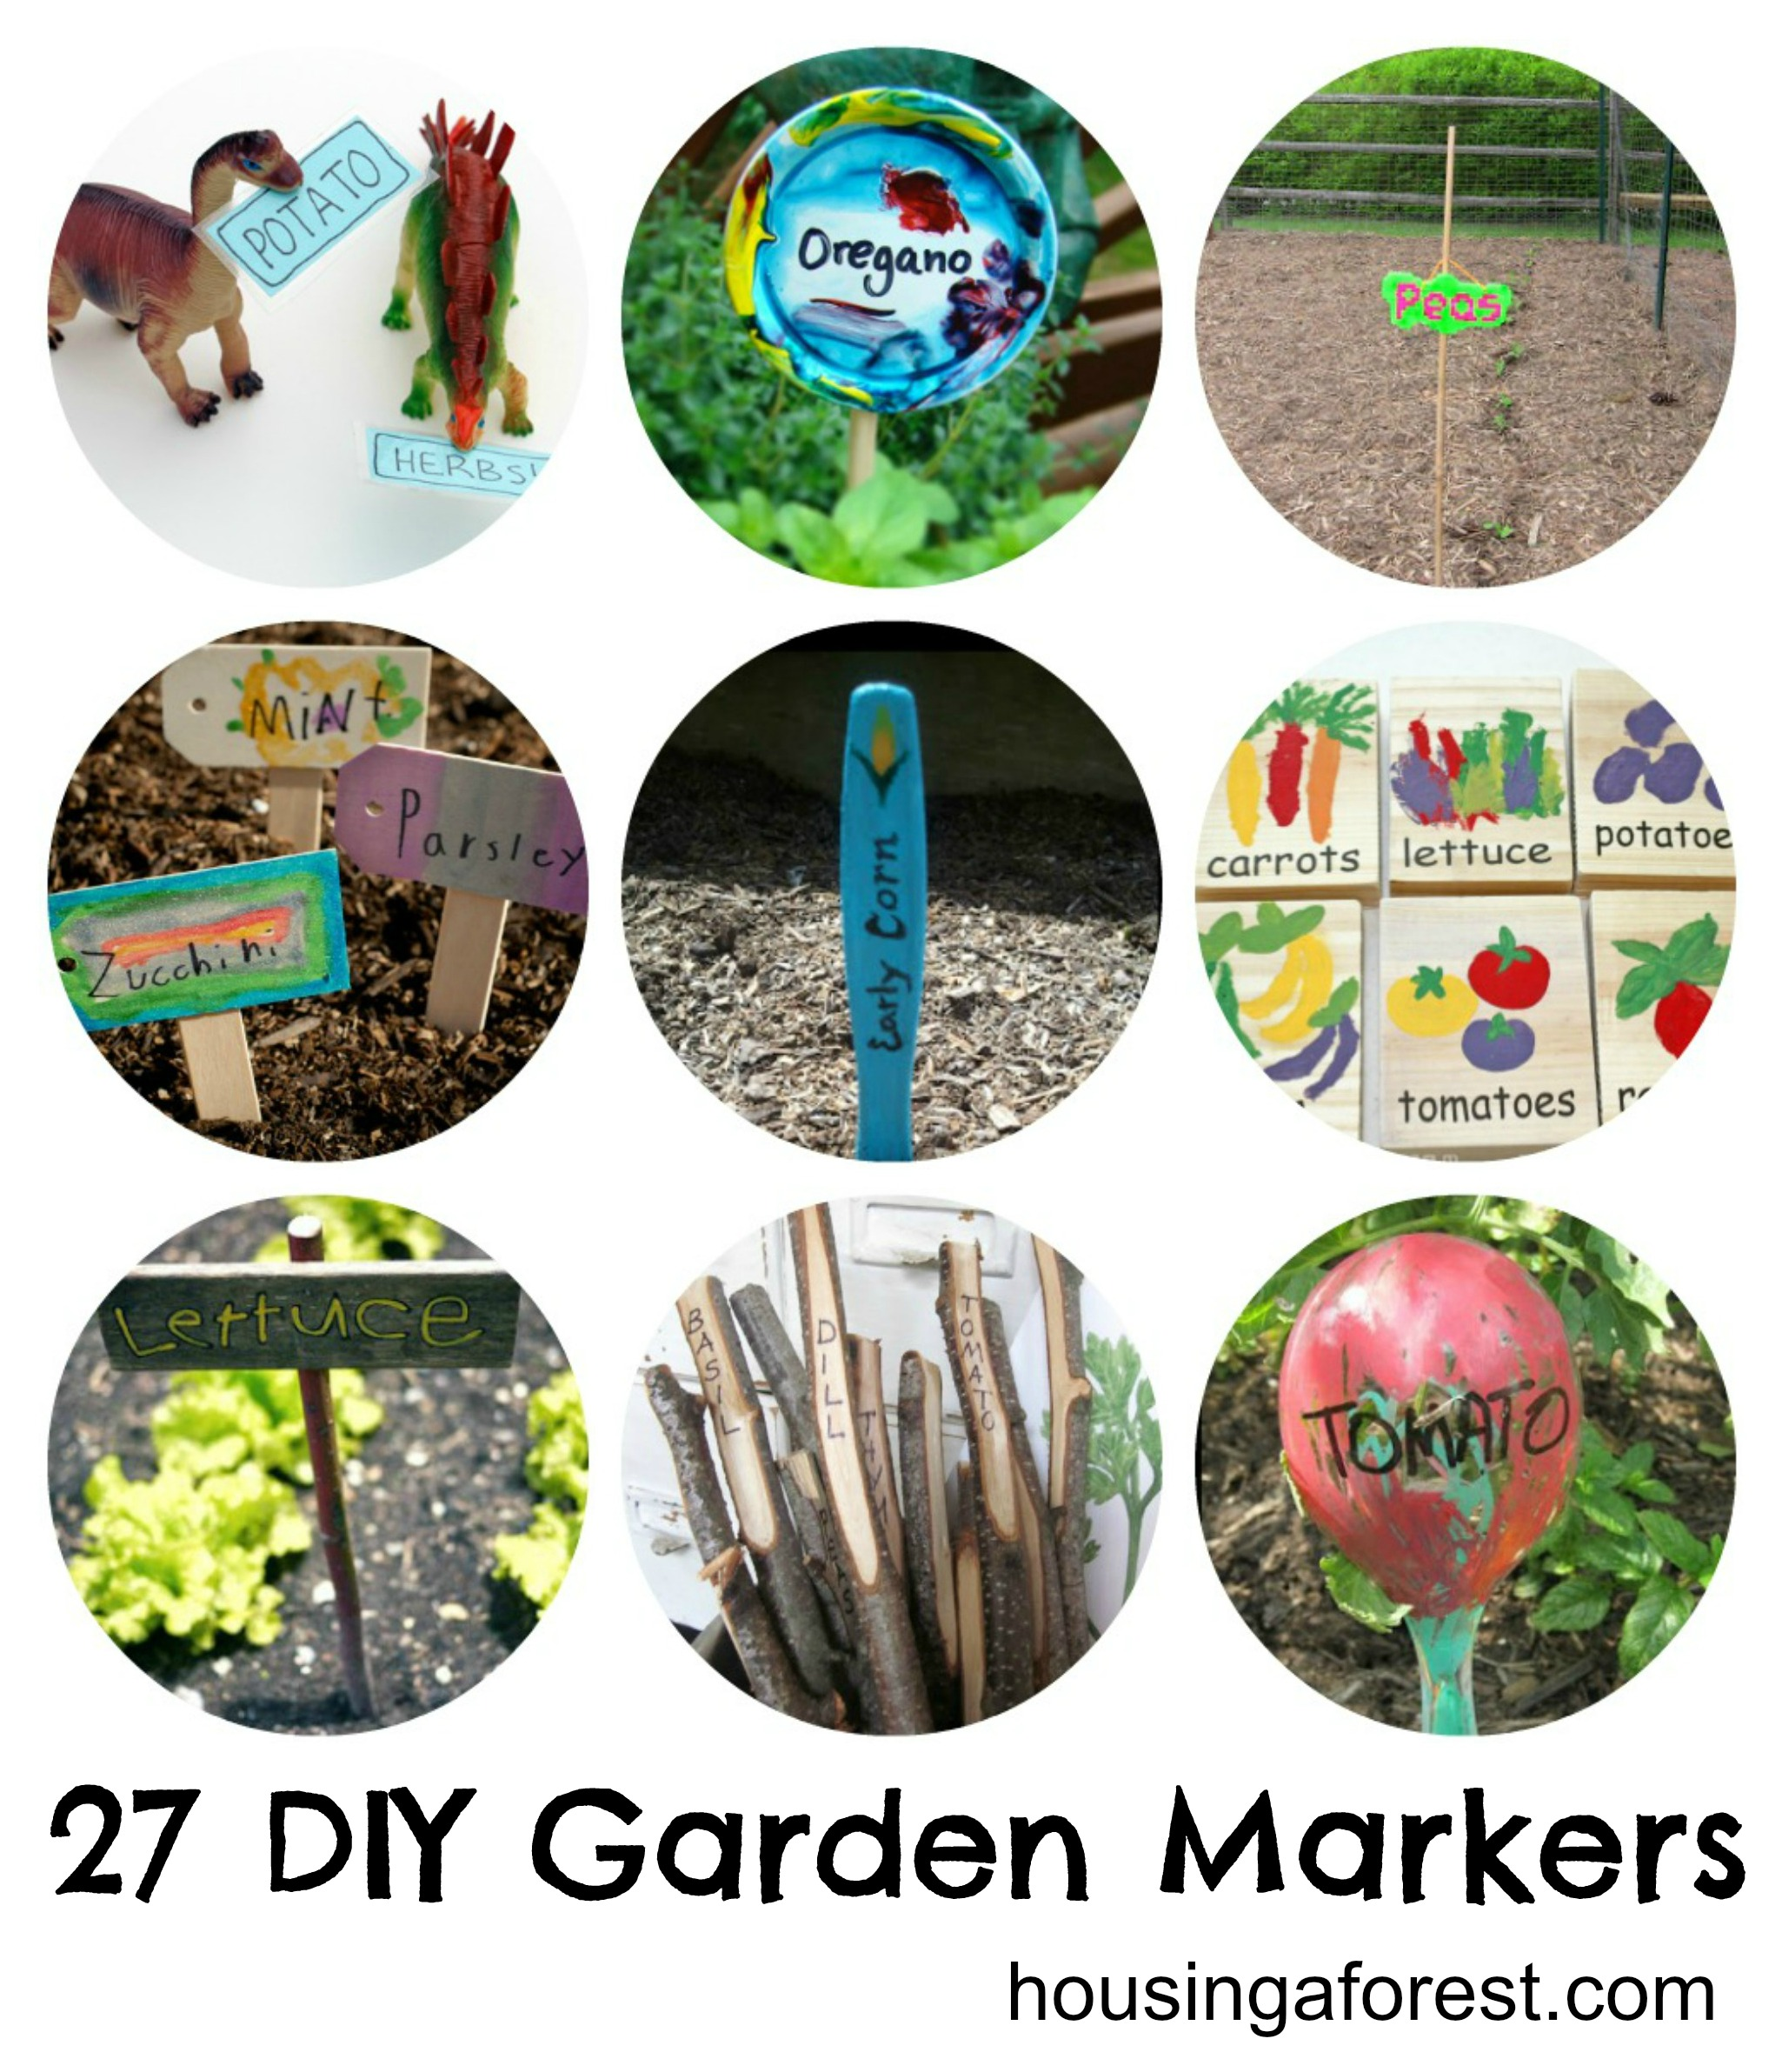 27 DIY Garden Markers Housing a Forest